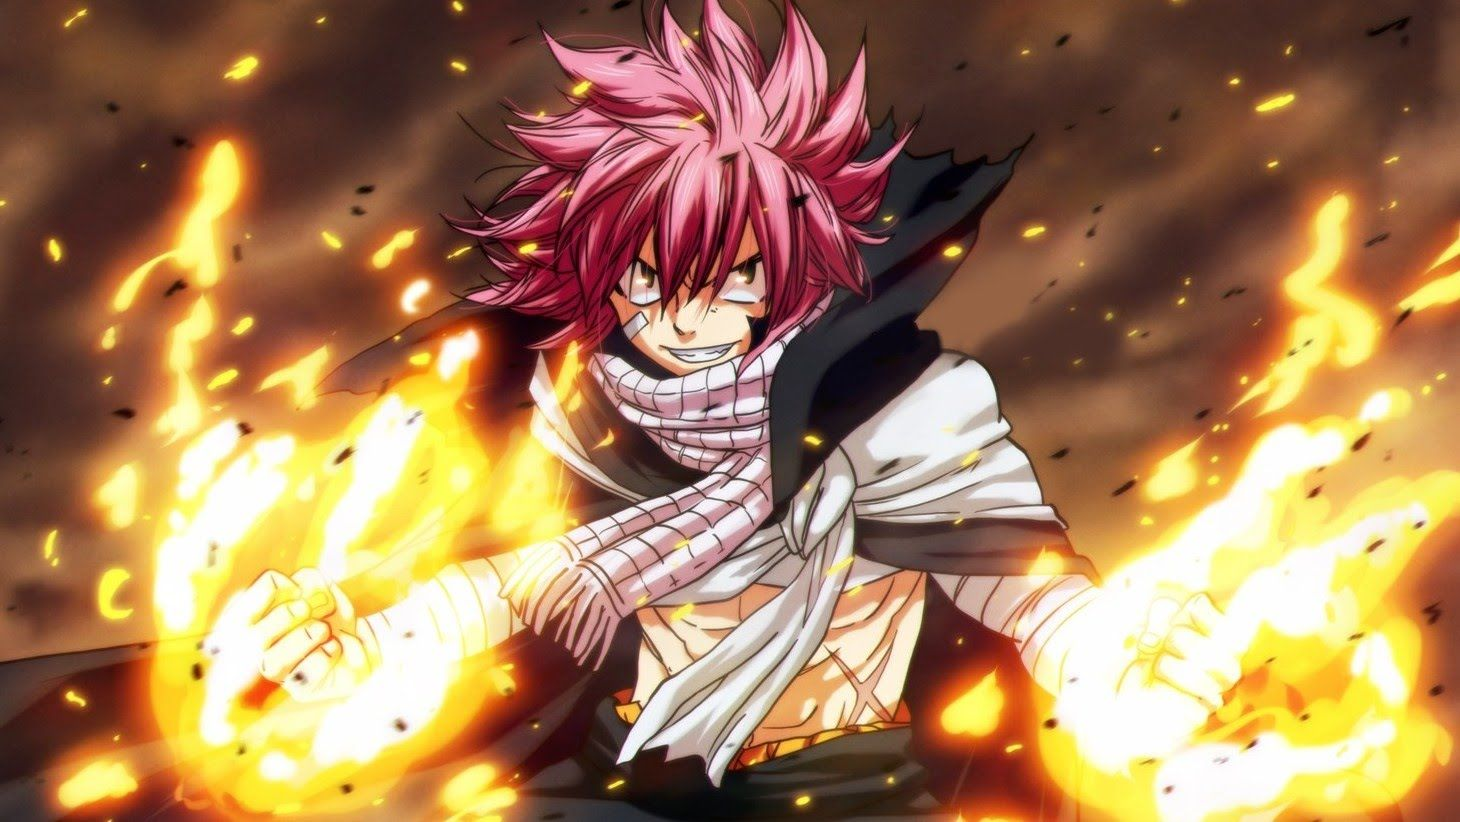 Fairy Tail [AMV] This Irresistible YouTube Fairy